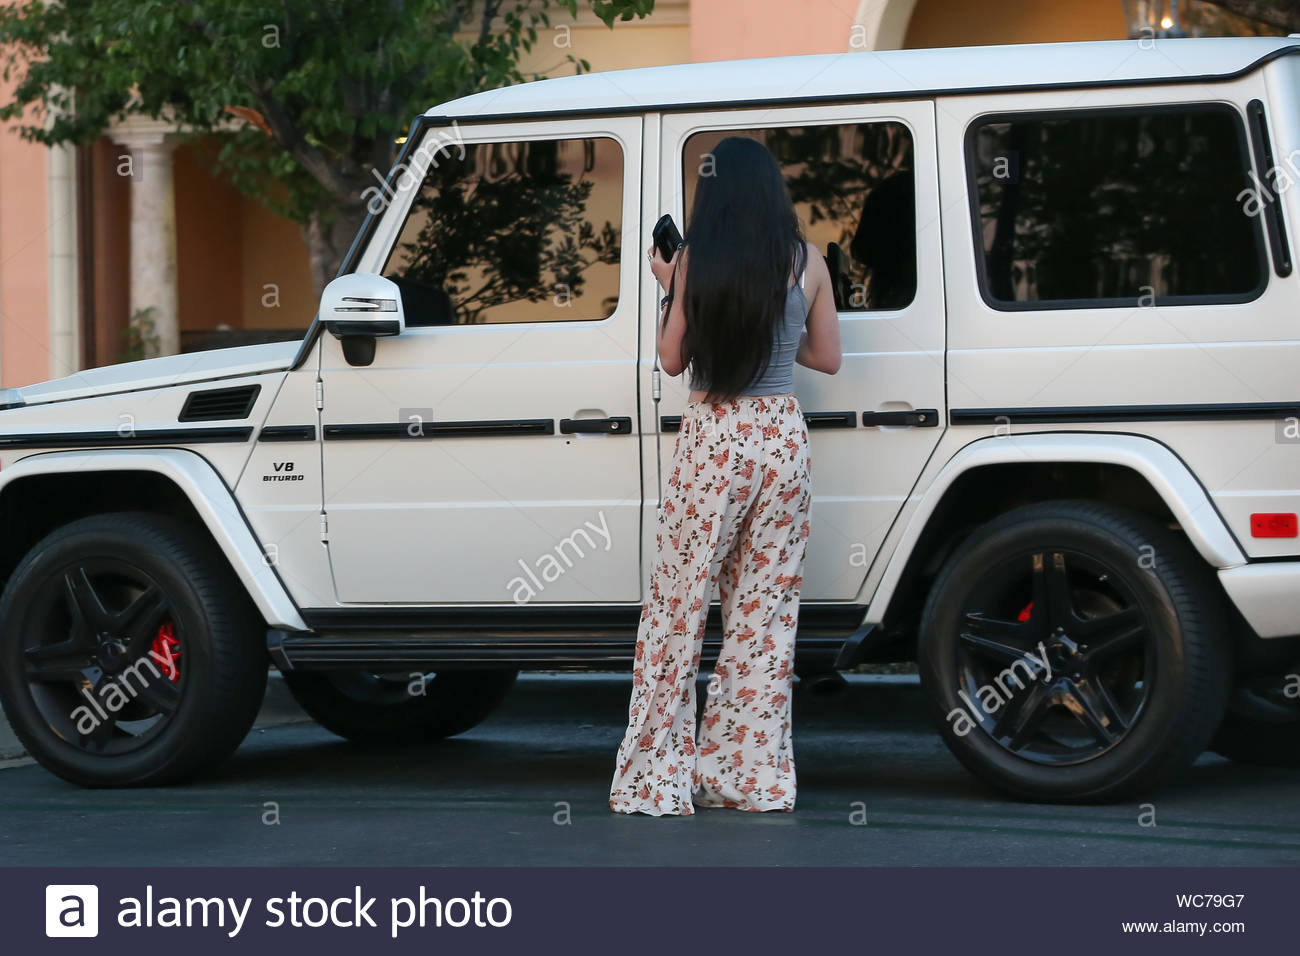 Calabasas Ca Kylie Jenner Was Seen Talking On Her Cell Phone While Driving Just One Day